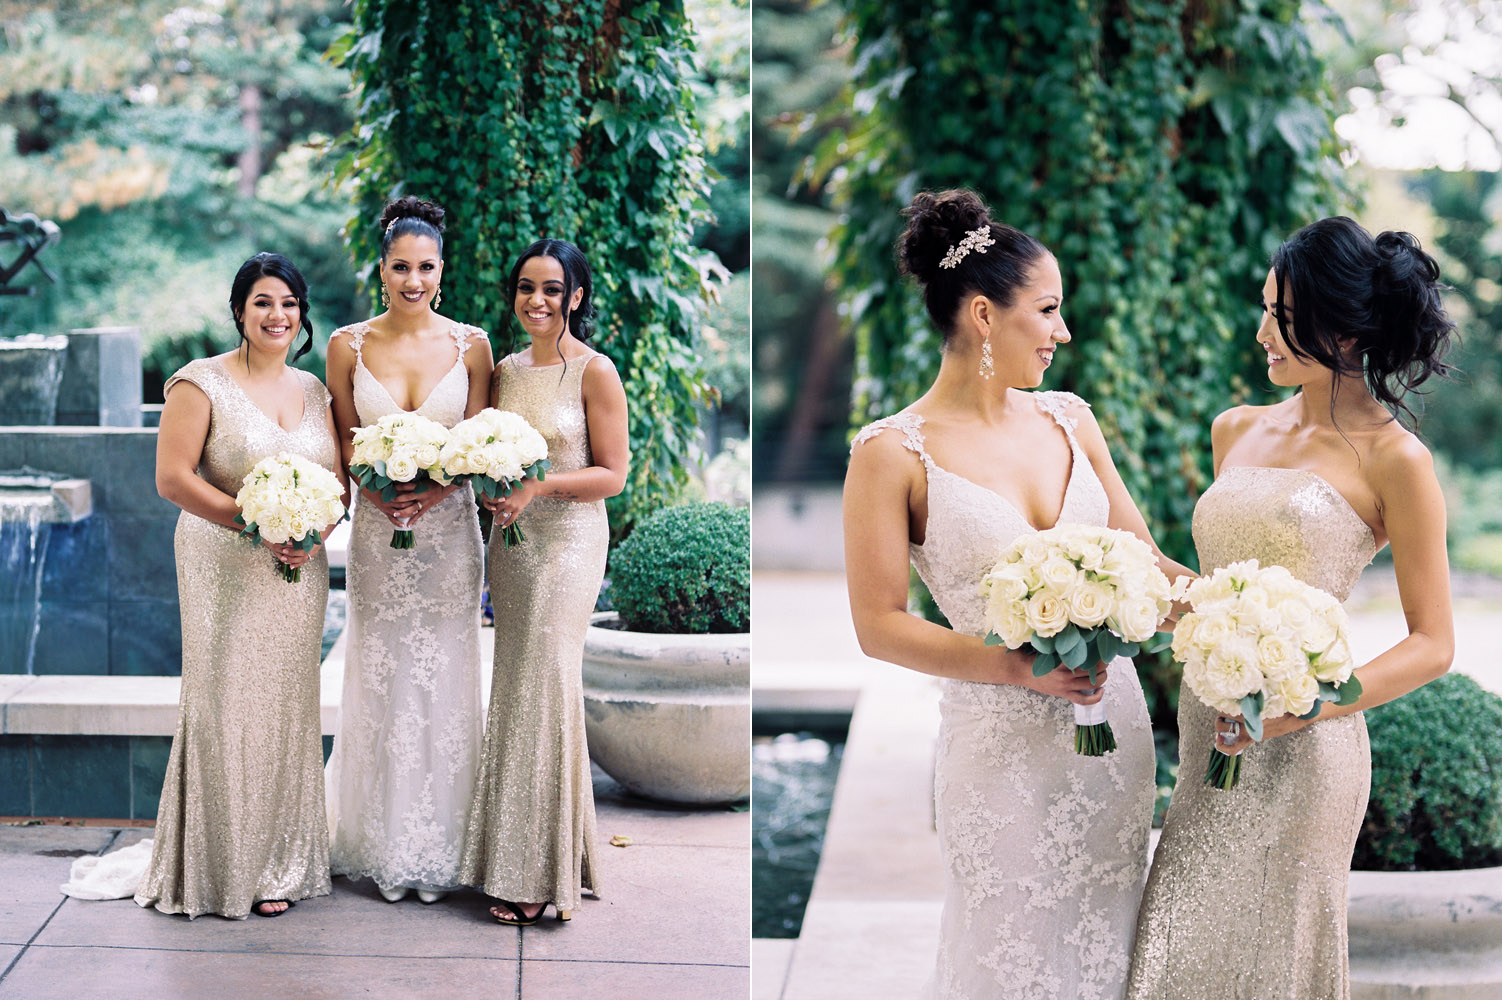 Bridal Party Portraits at The Bellevue Club Wedding Photography